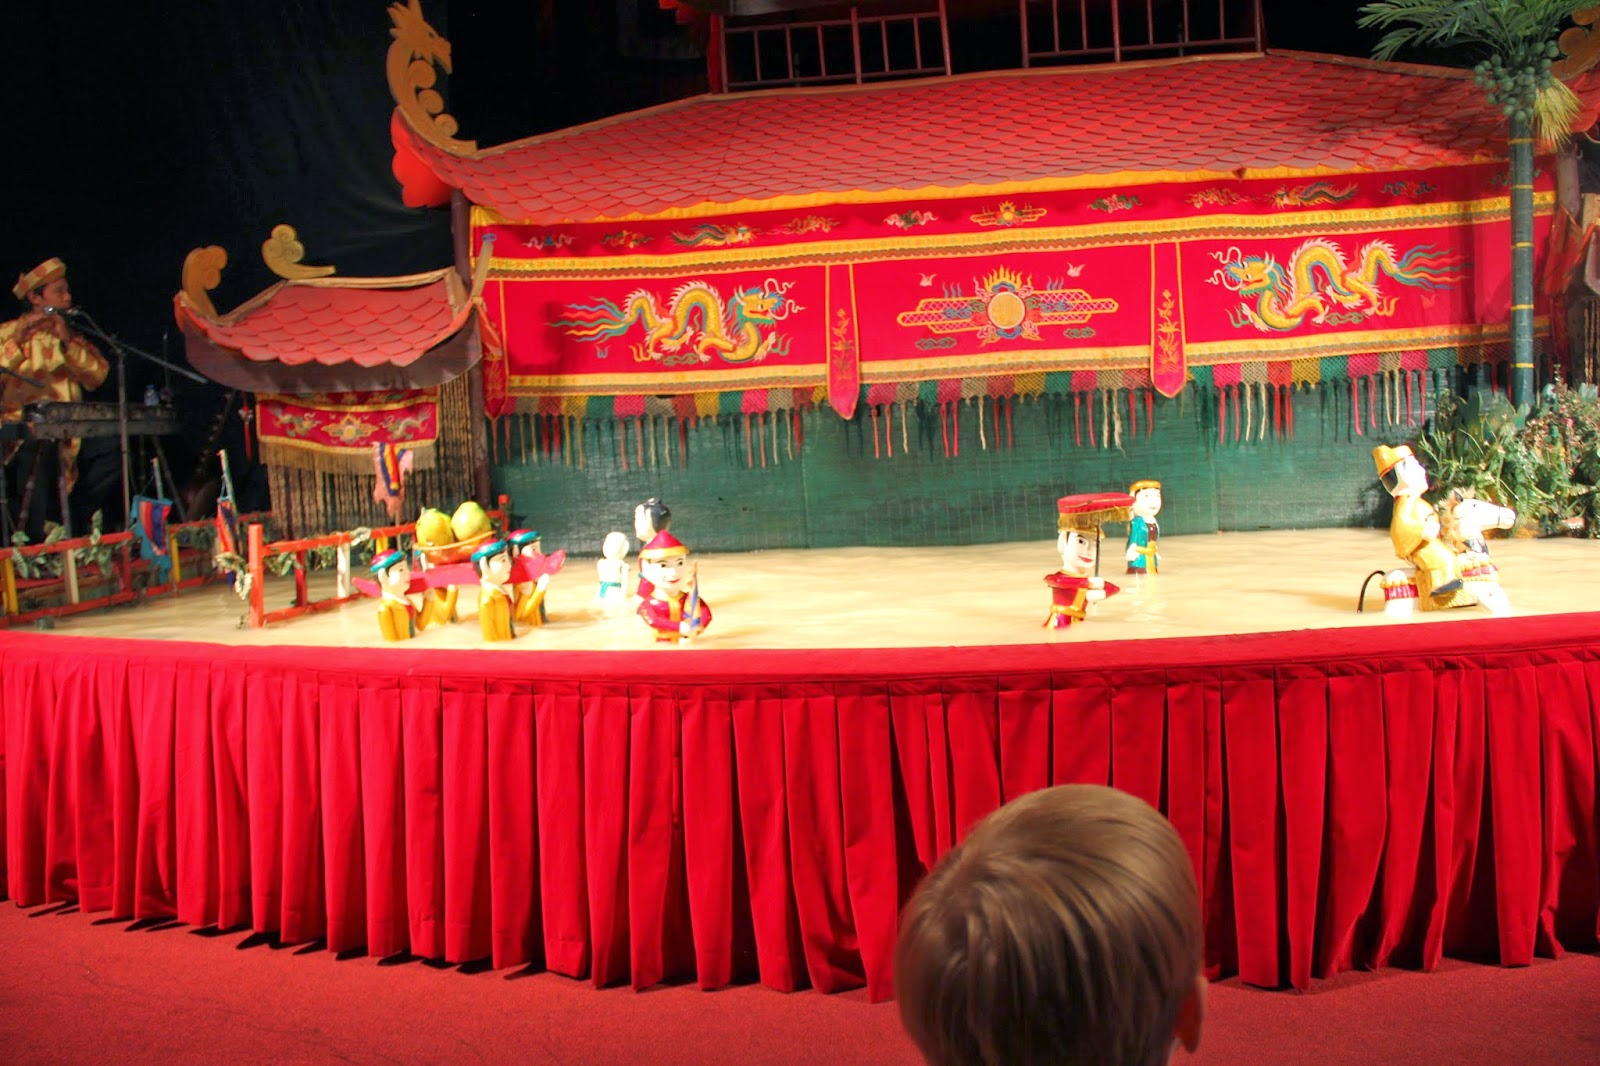 A performance at the Golden Dragon Water Puppet theater.